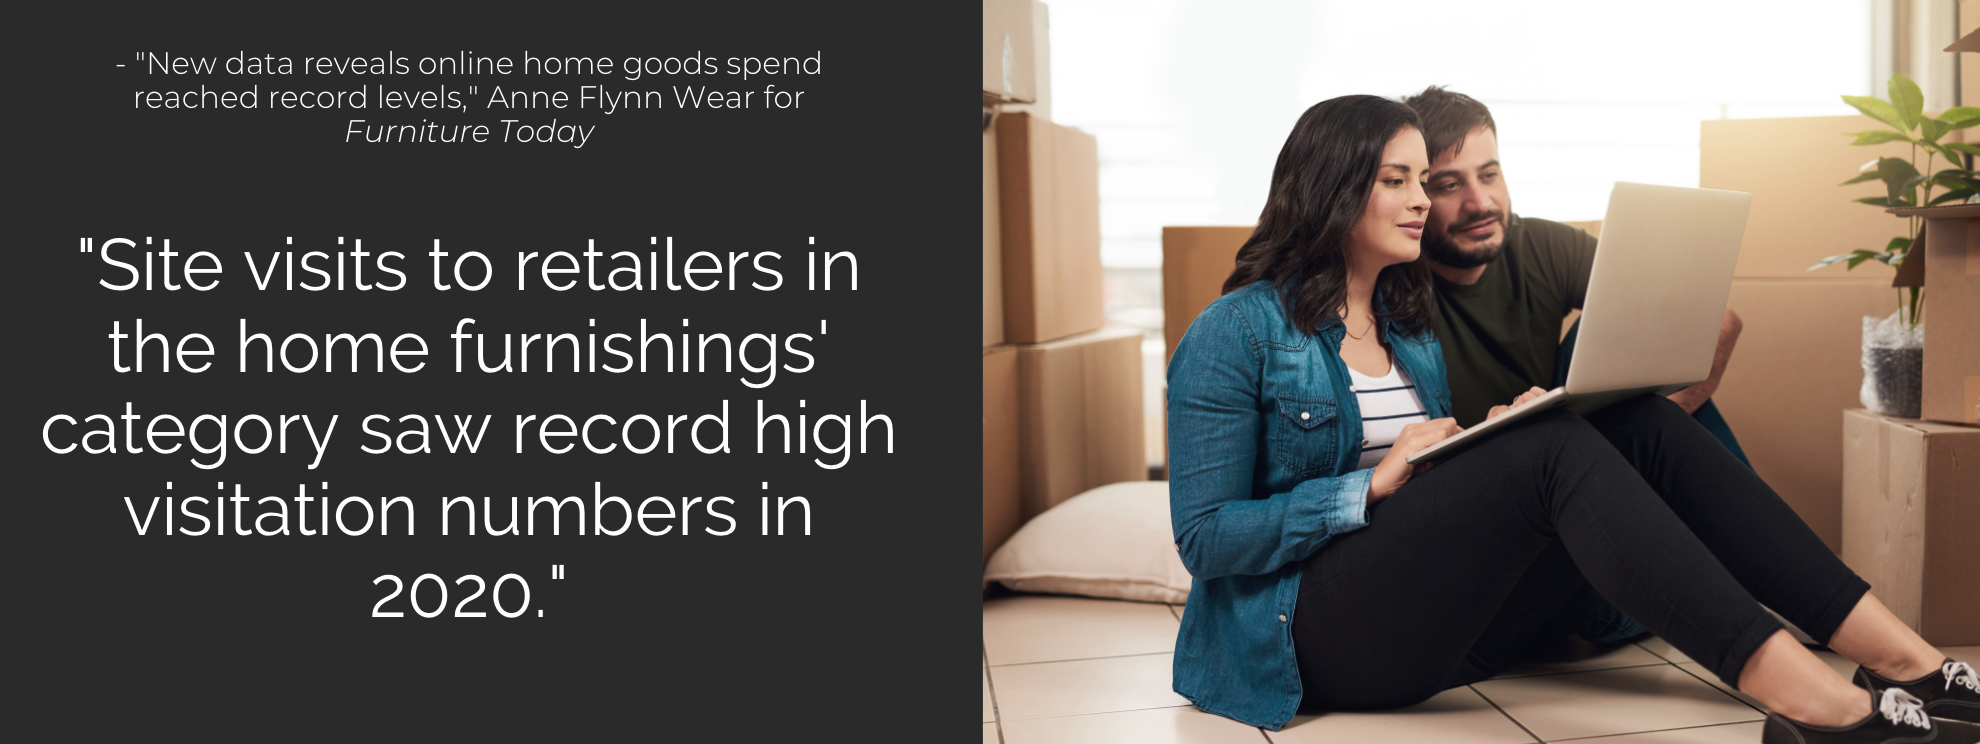 Site visits to retailers in the home furnishings' category saw record high visitation